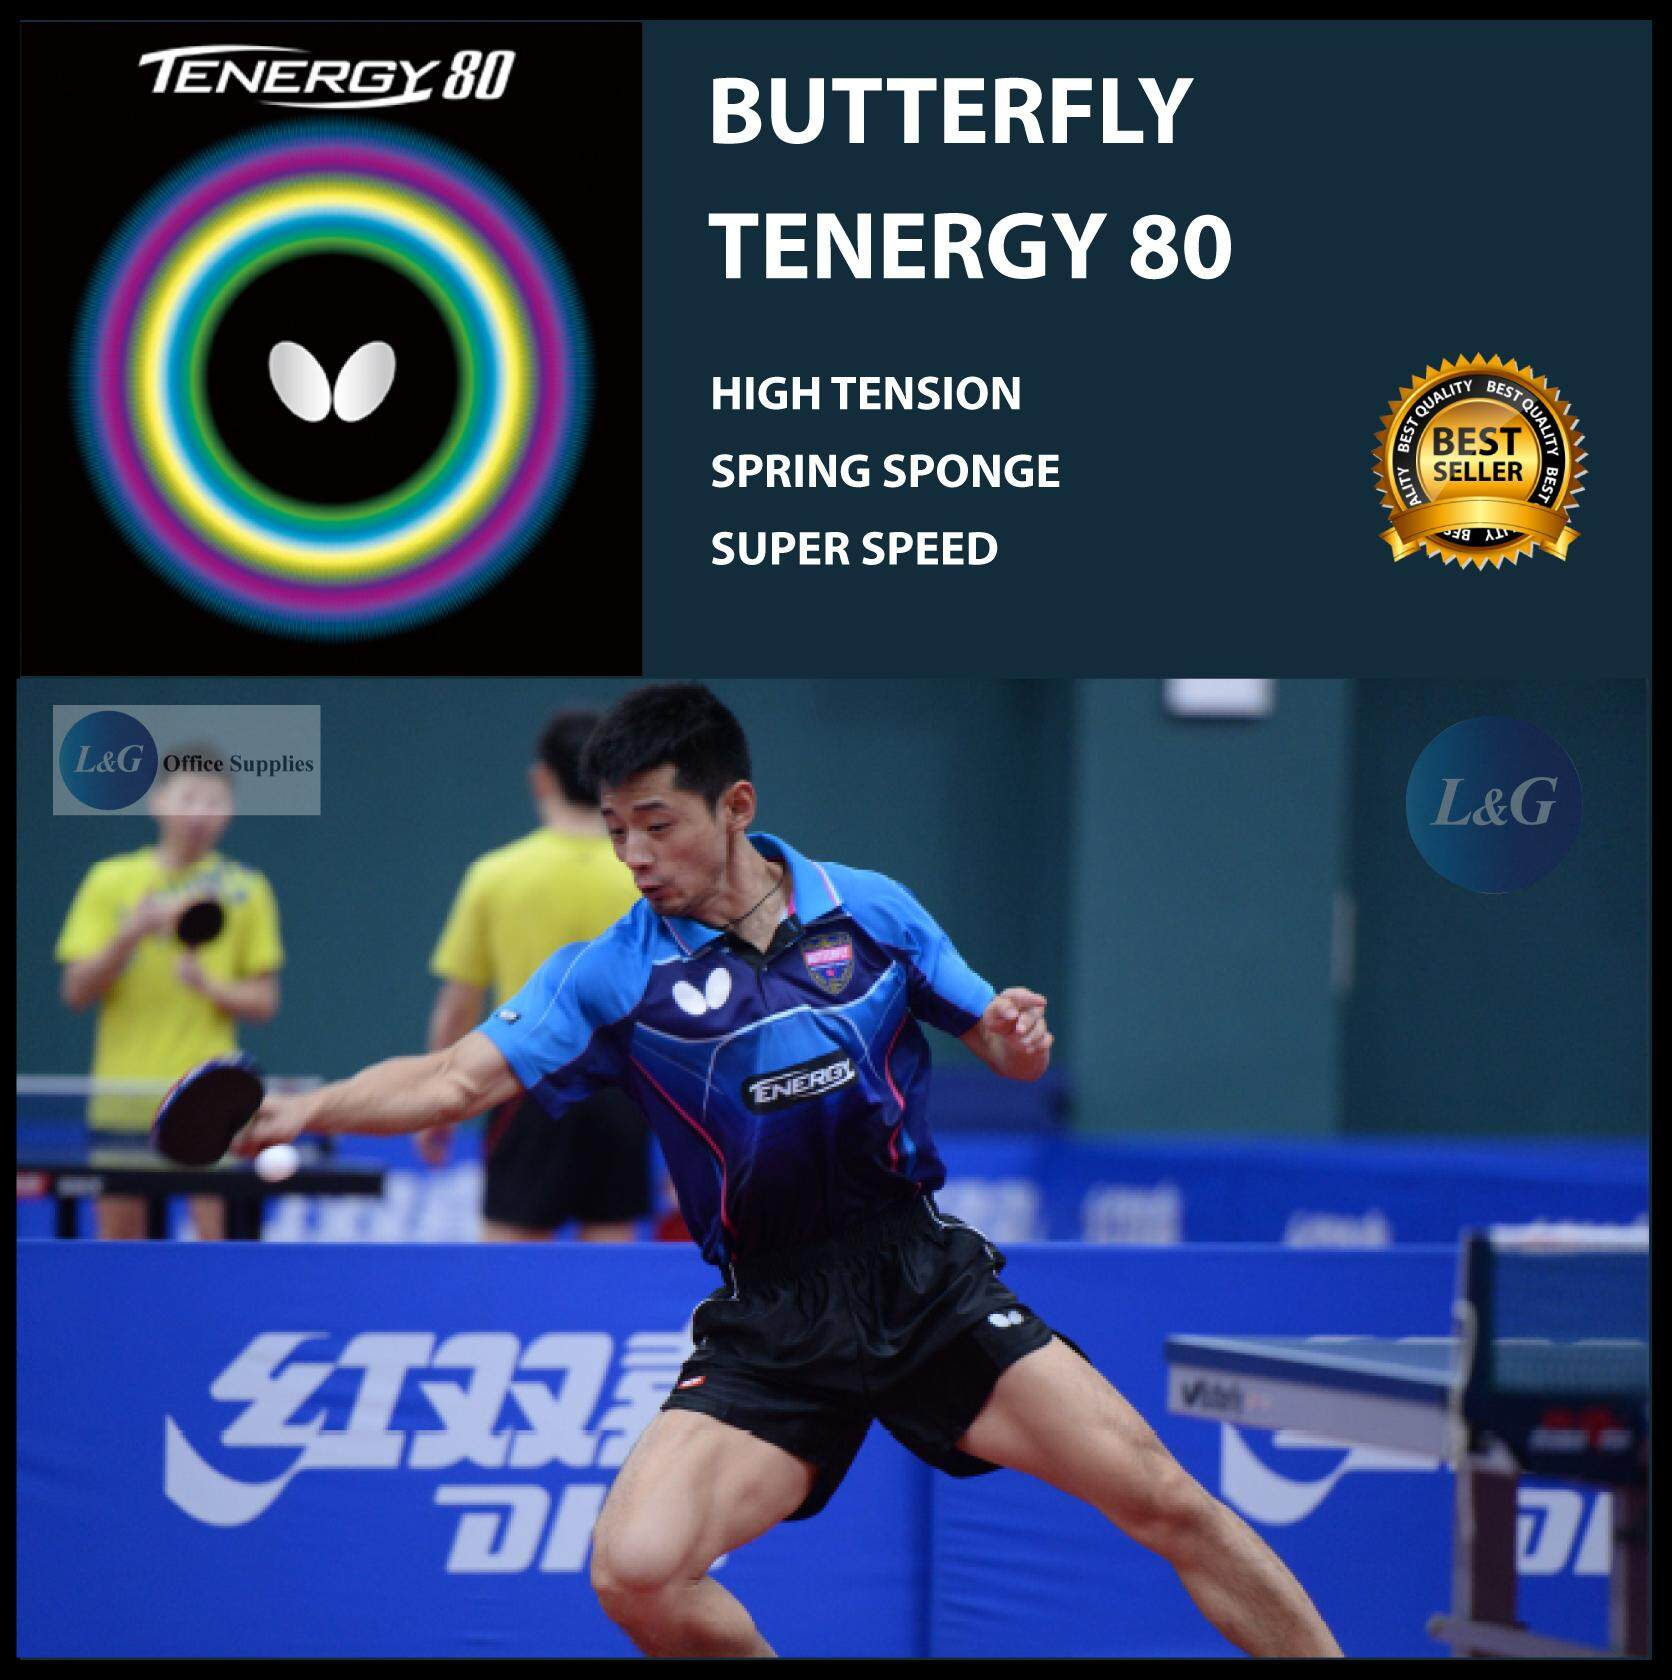 BUTTERFLY Tenergy 80 Spin-Elastic Inverted Table Tennis Ping Pong Rubber 2.1mm Made In Japan ITTF Approved